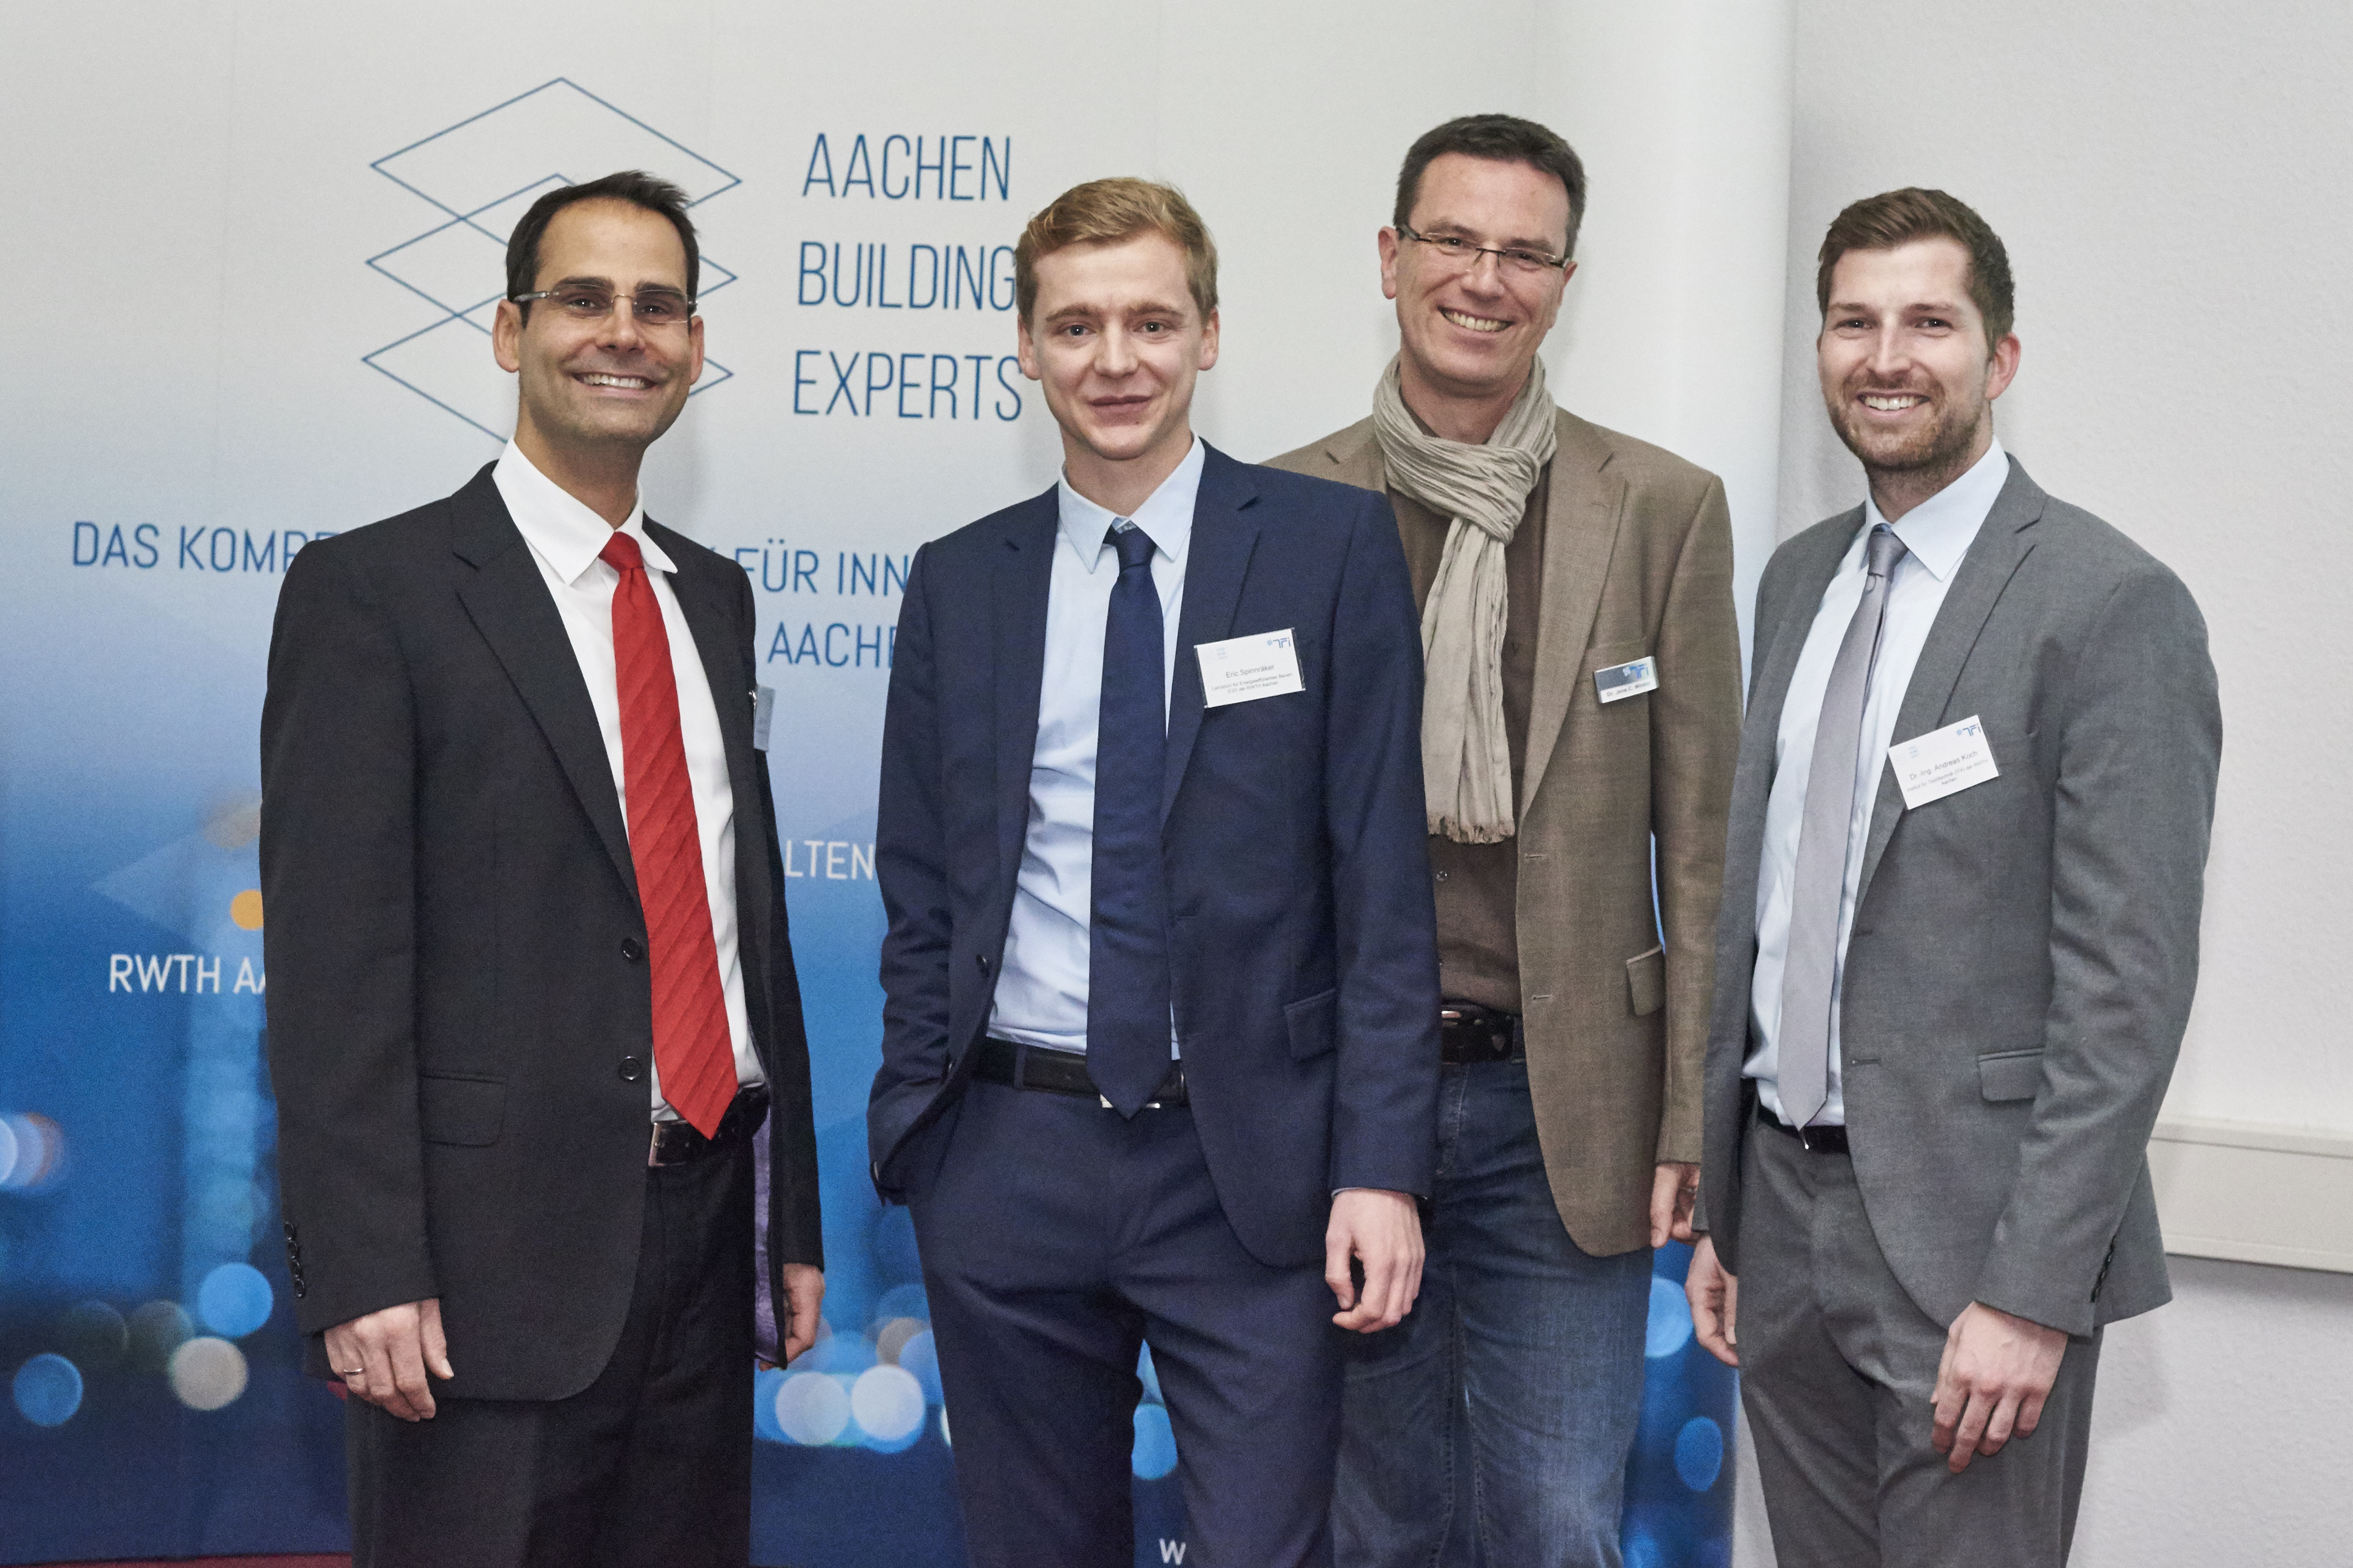 The Managing Director of AACHEN BUILDING EXPERTS e. V. with the speakers